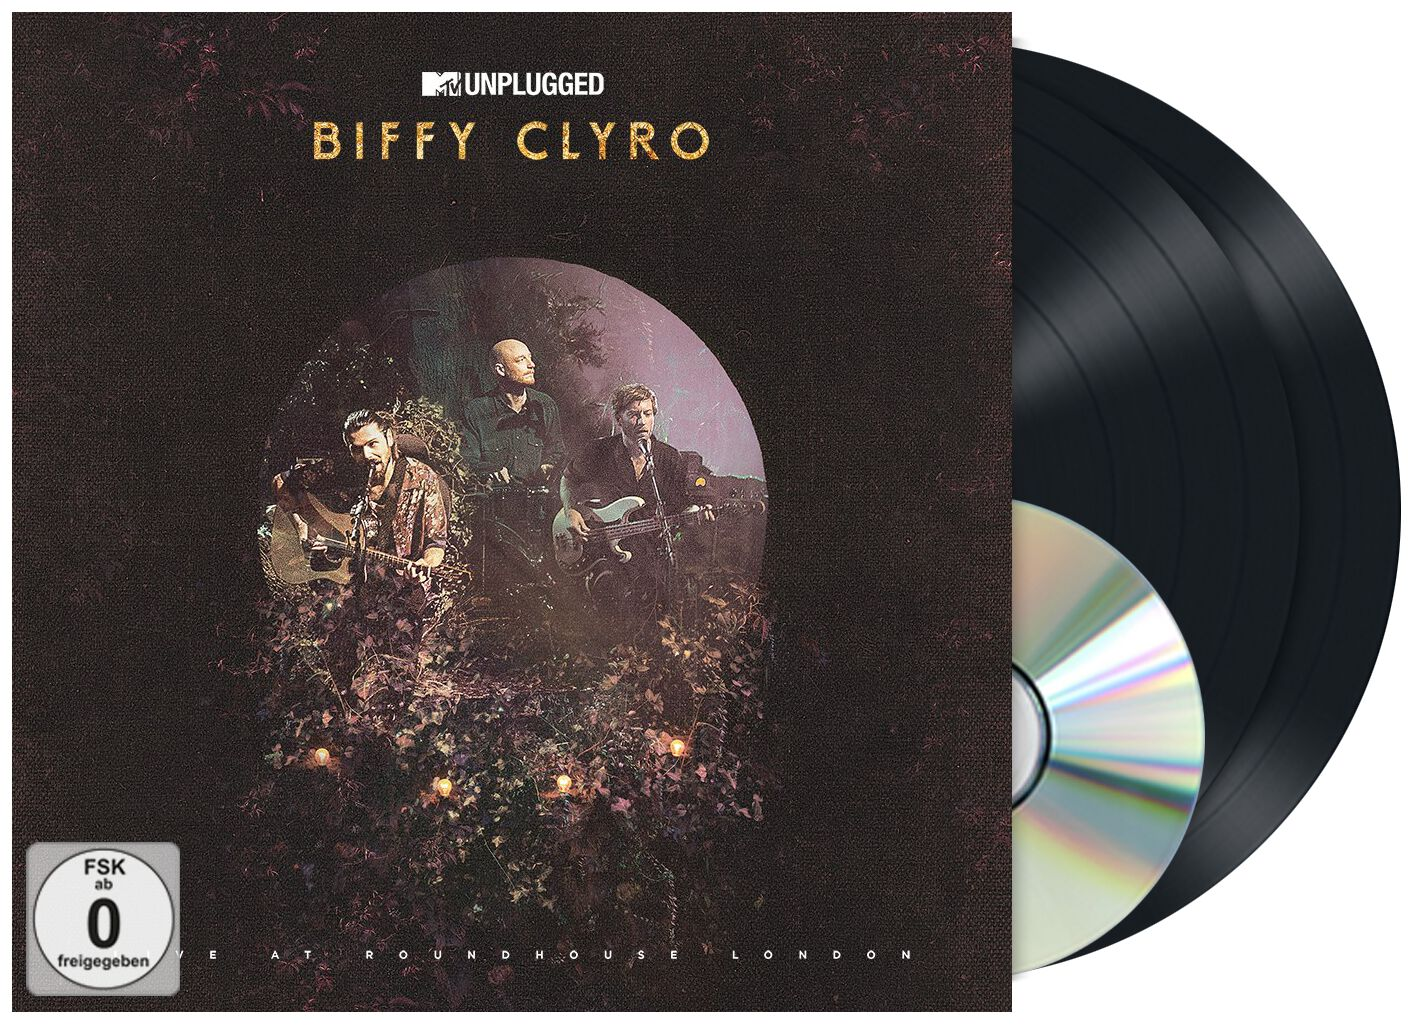 Image of Biffy Clyro MTV unplugged (Live at Roundhouse, London) 2-LP & CD & DVD Standard